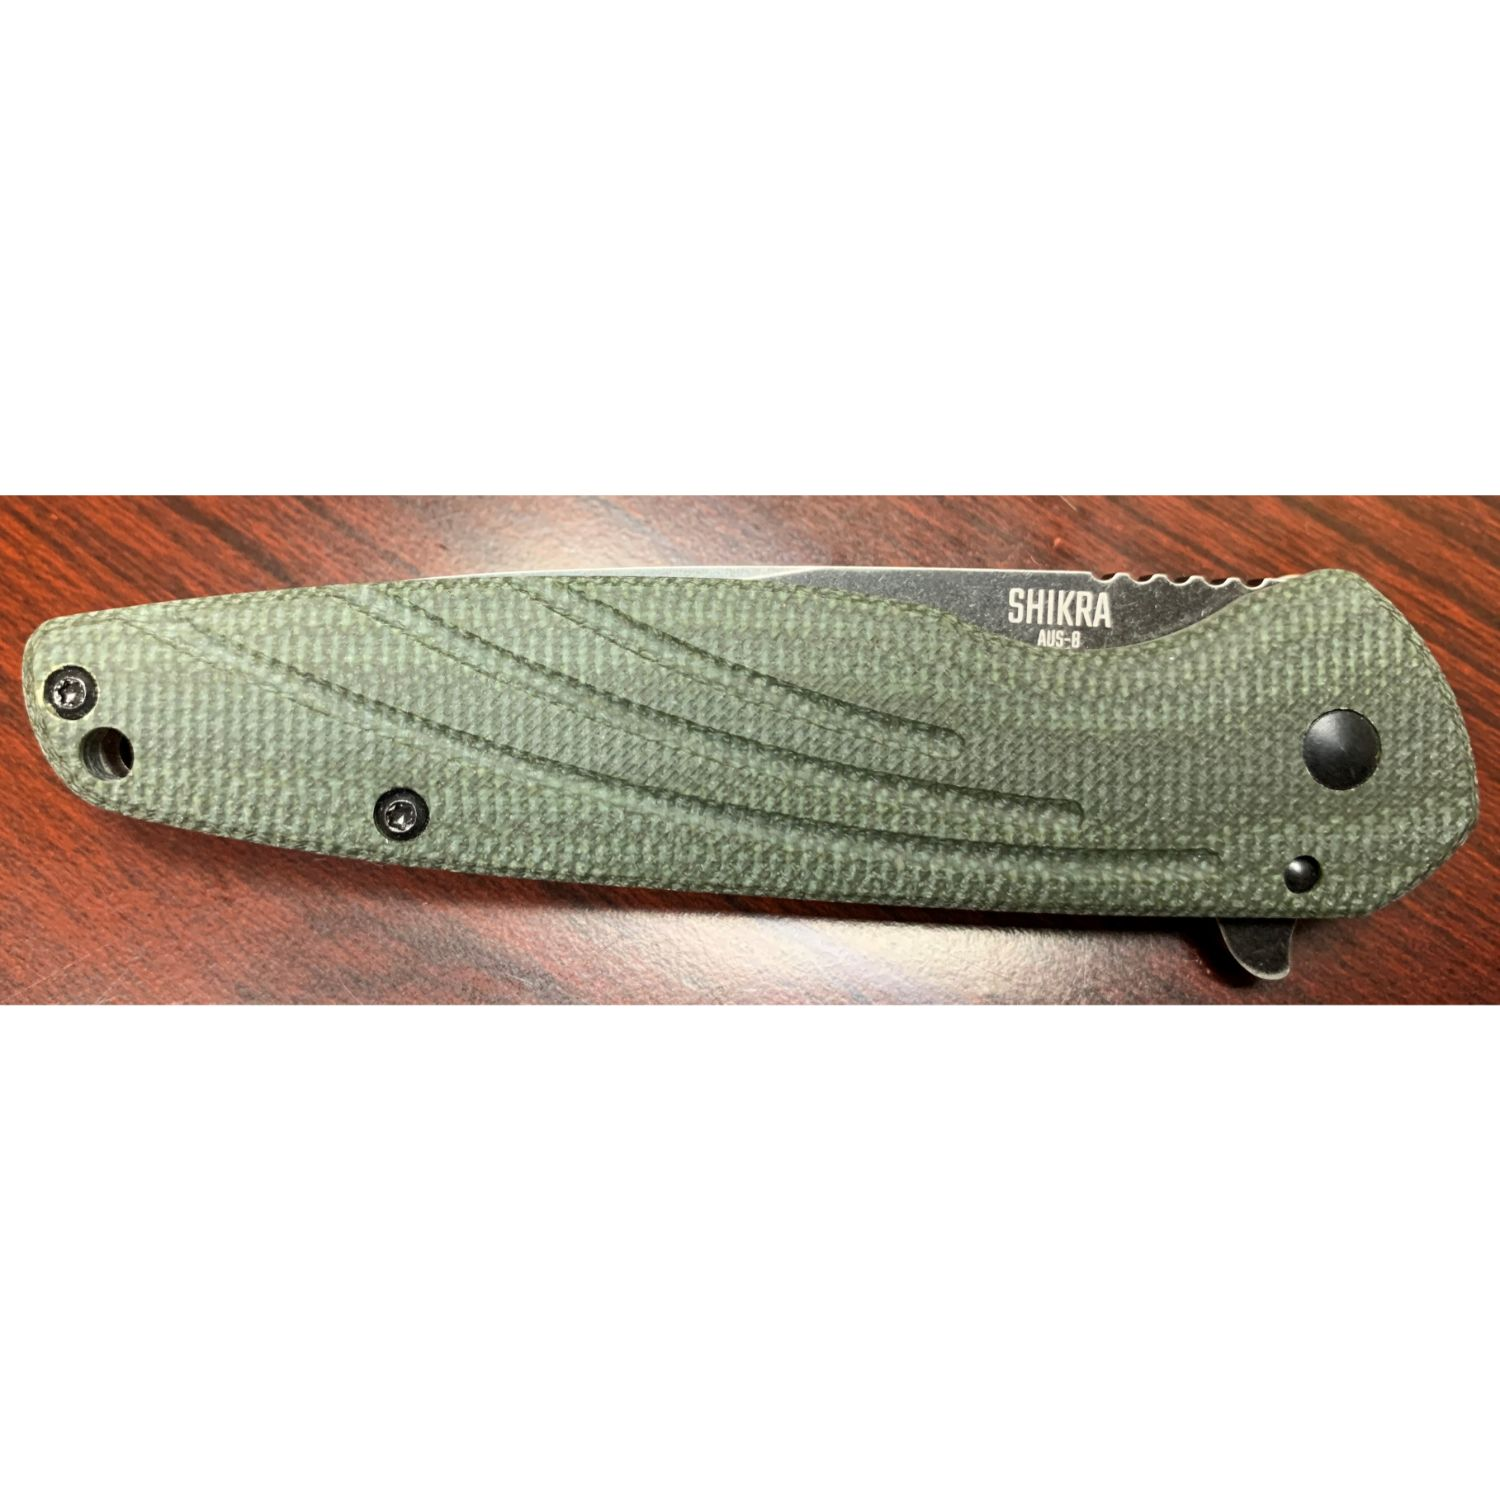 OKC Shikra Folder 3.2 in Green Micarta-Titanium Handle